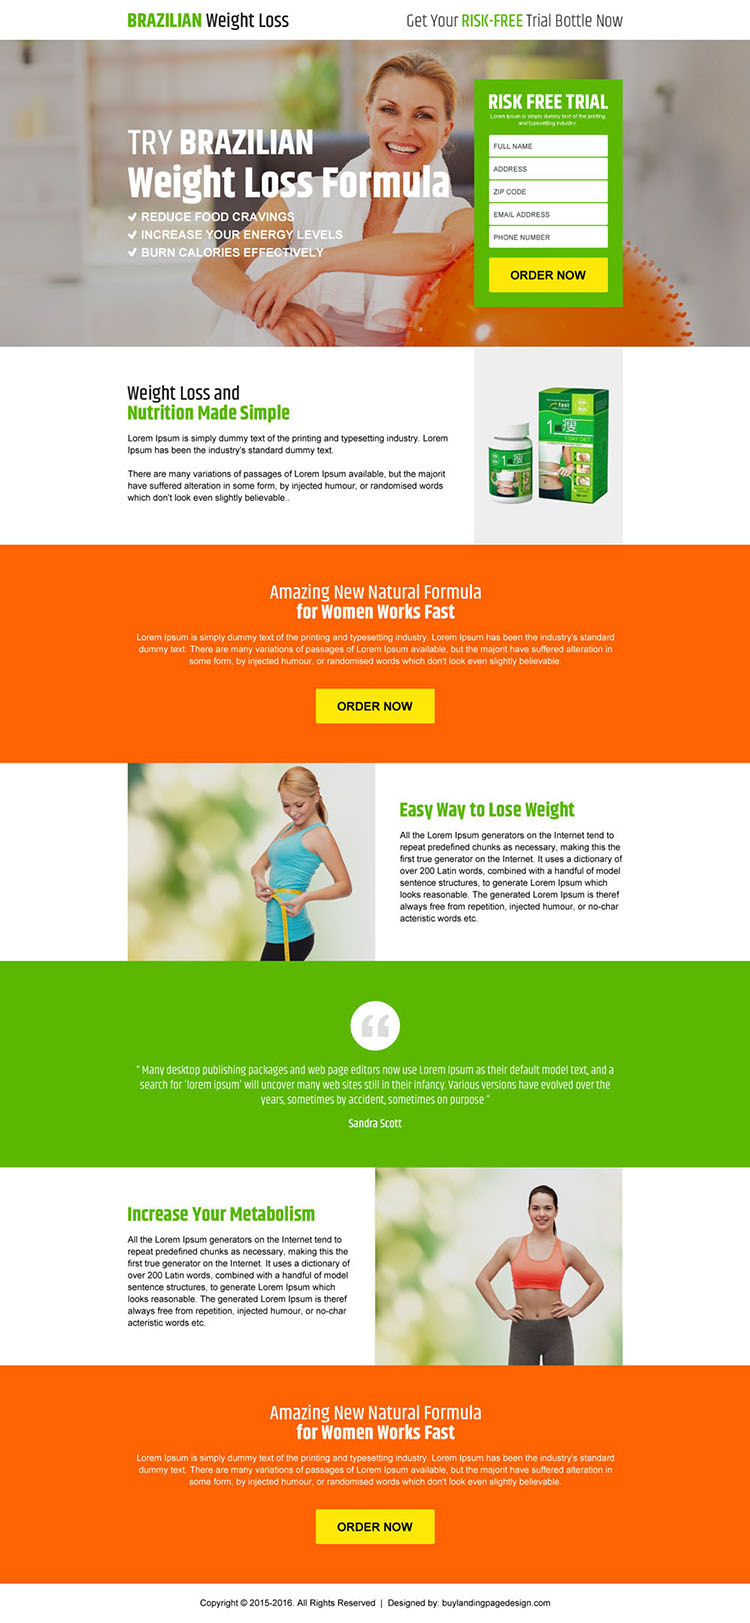 brazilian weight loss risk free product trial landing page design